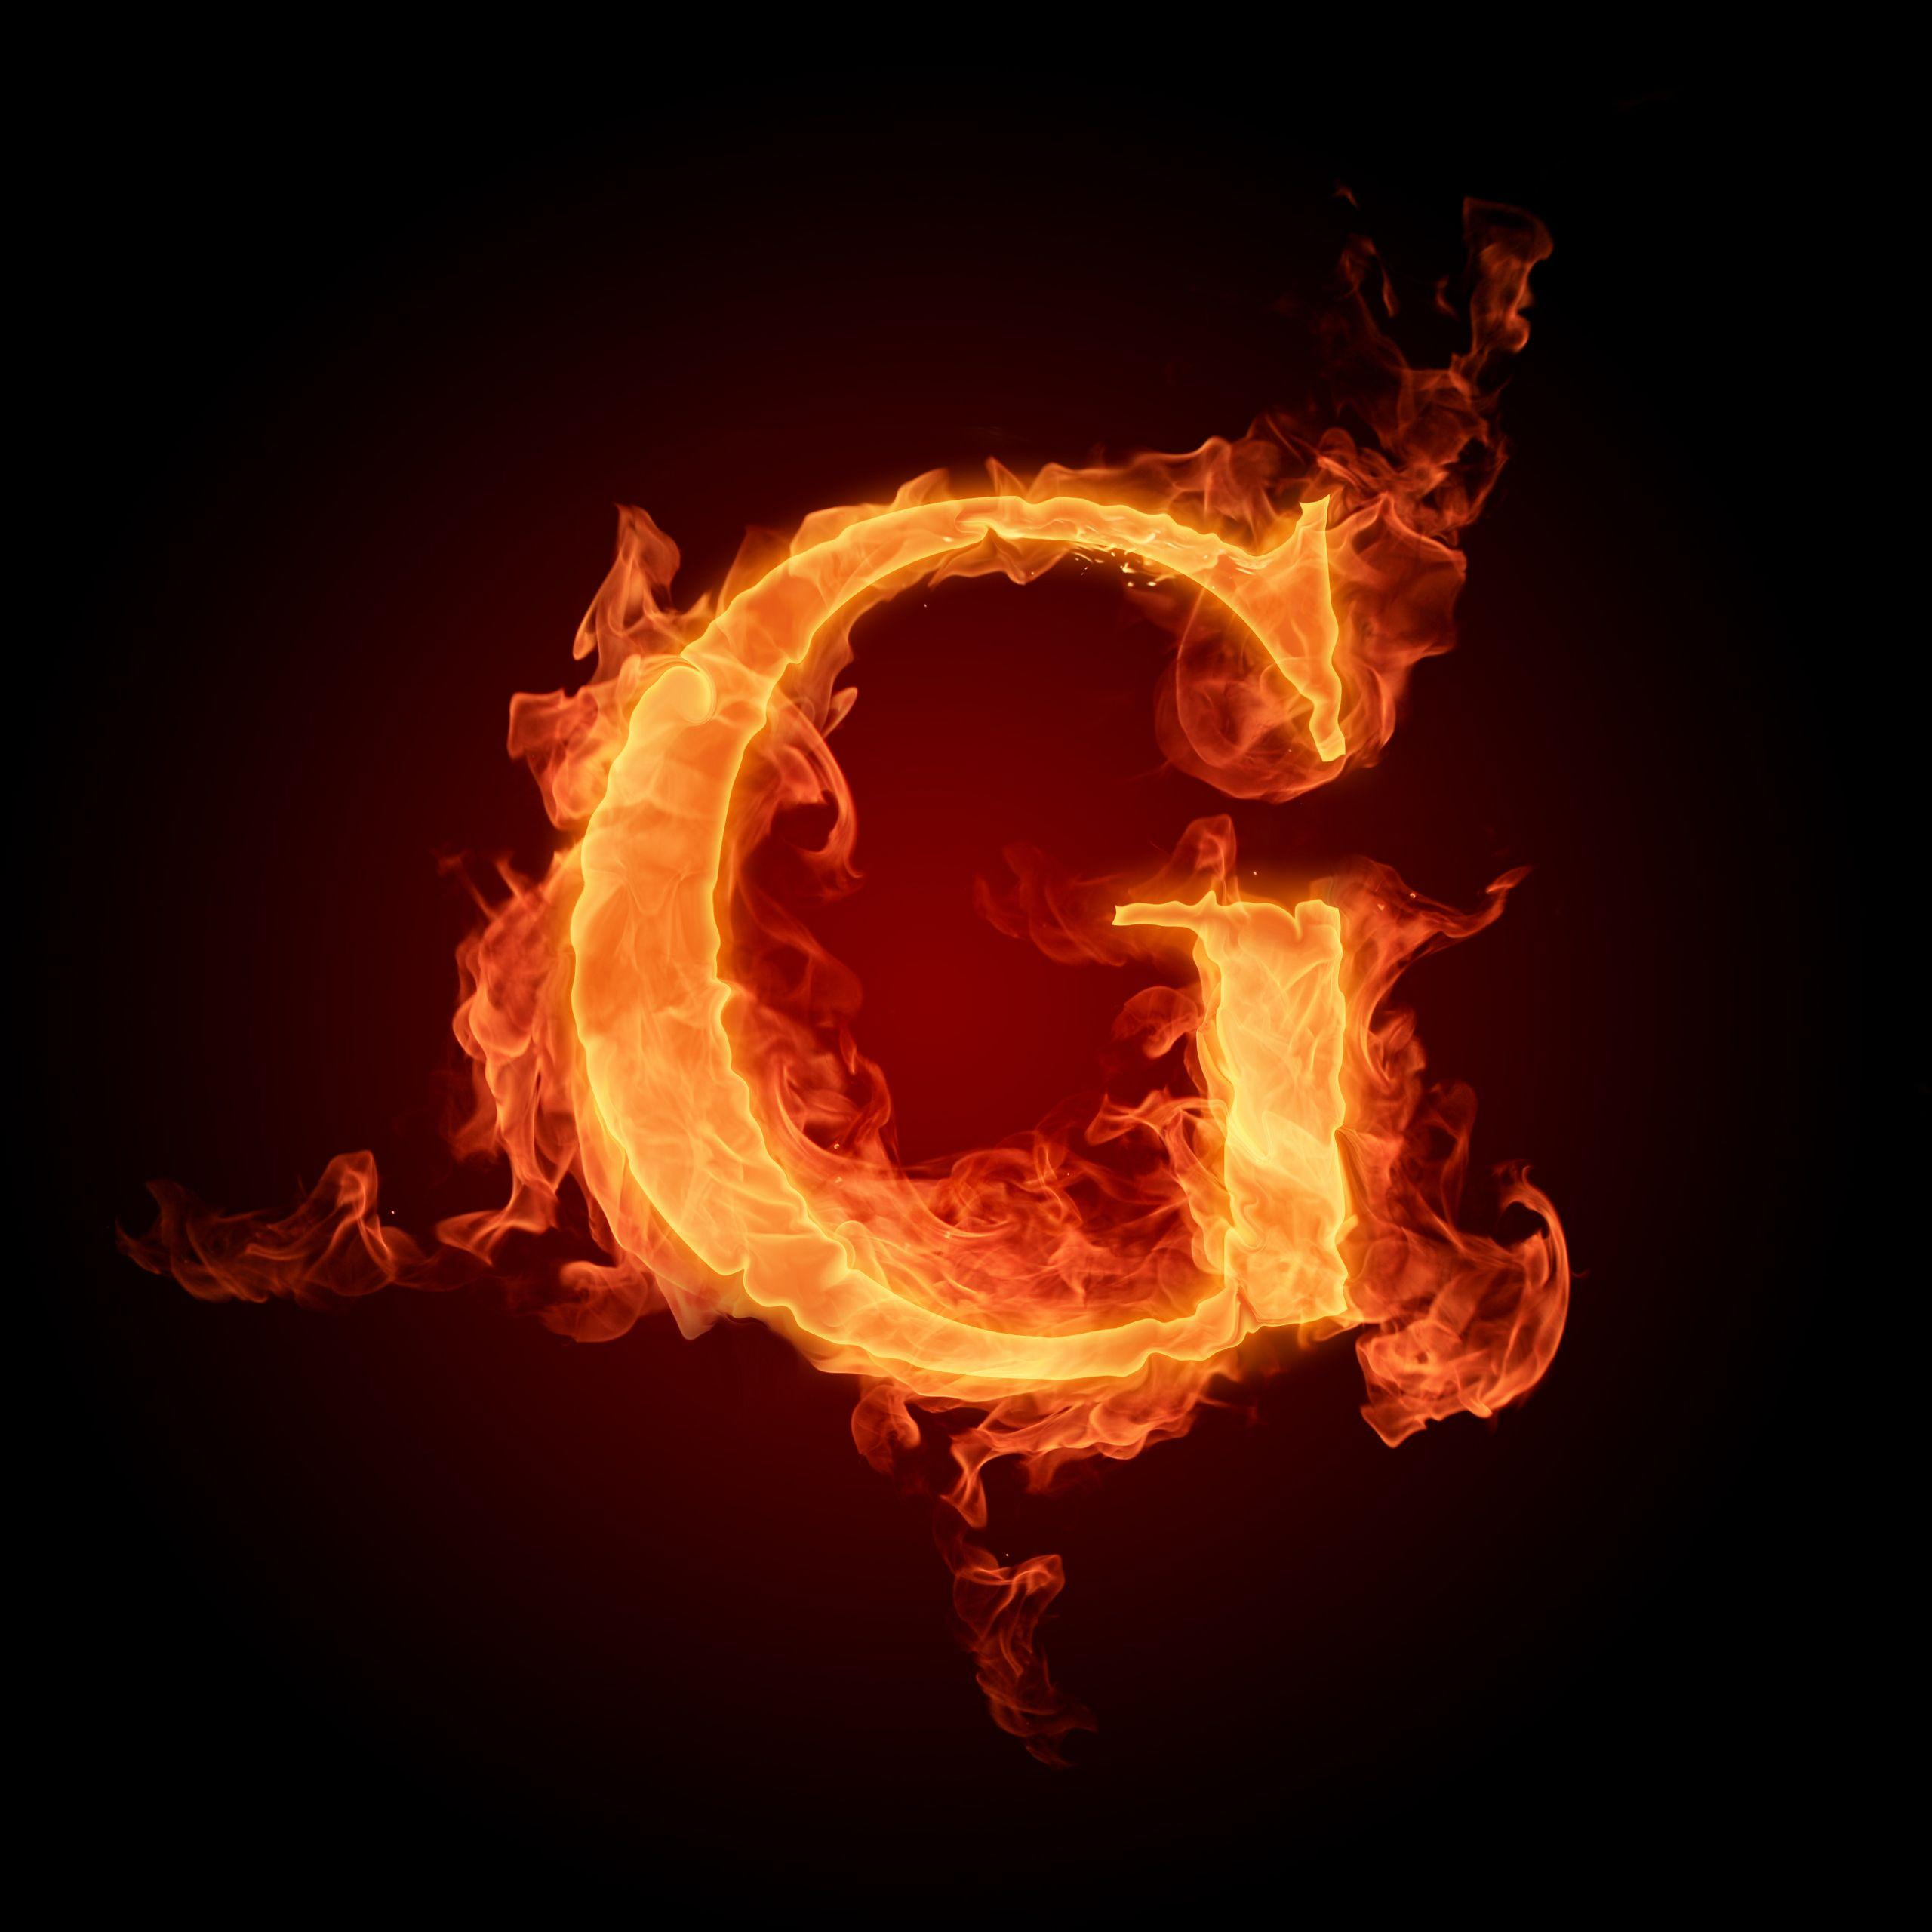 wallpapers g wallpaper cave Google Chrome the letter g images the letter g hd wallpaper and background best